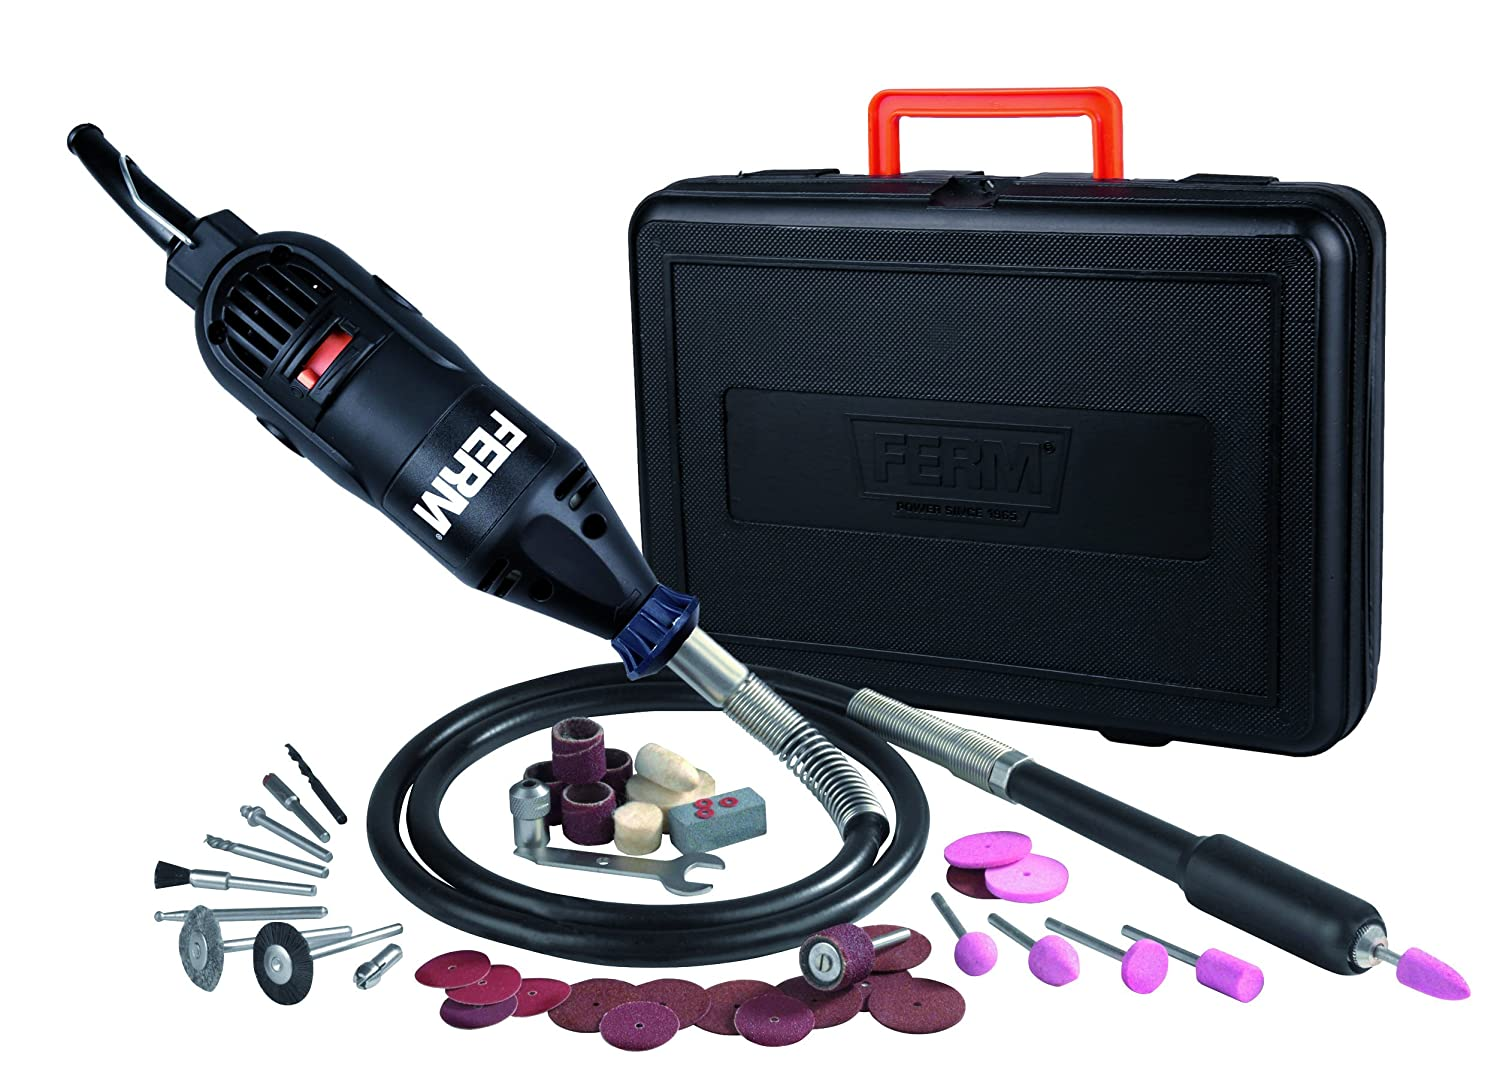 Variable Speed Multipurpose tool- Flexible Shaft 160W Incl FERM Rotary Multitool 40 Accessories and a storage case